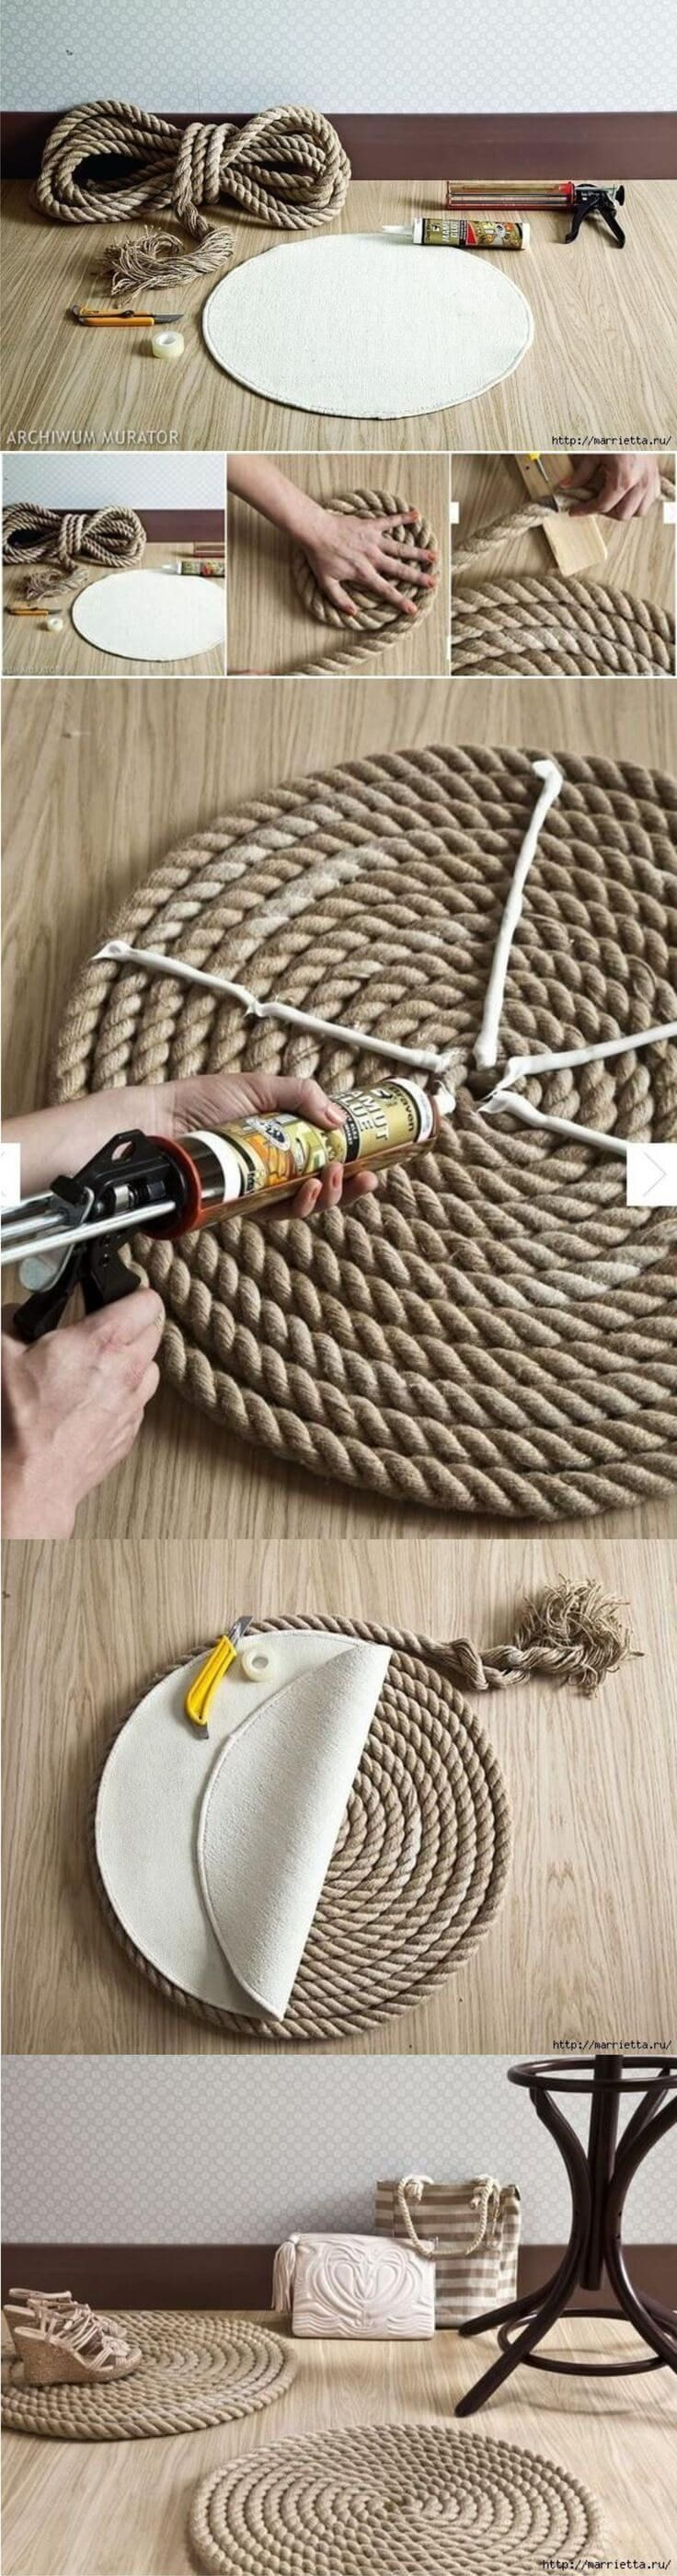 Spiral Rope Mats for Your Entranceway